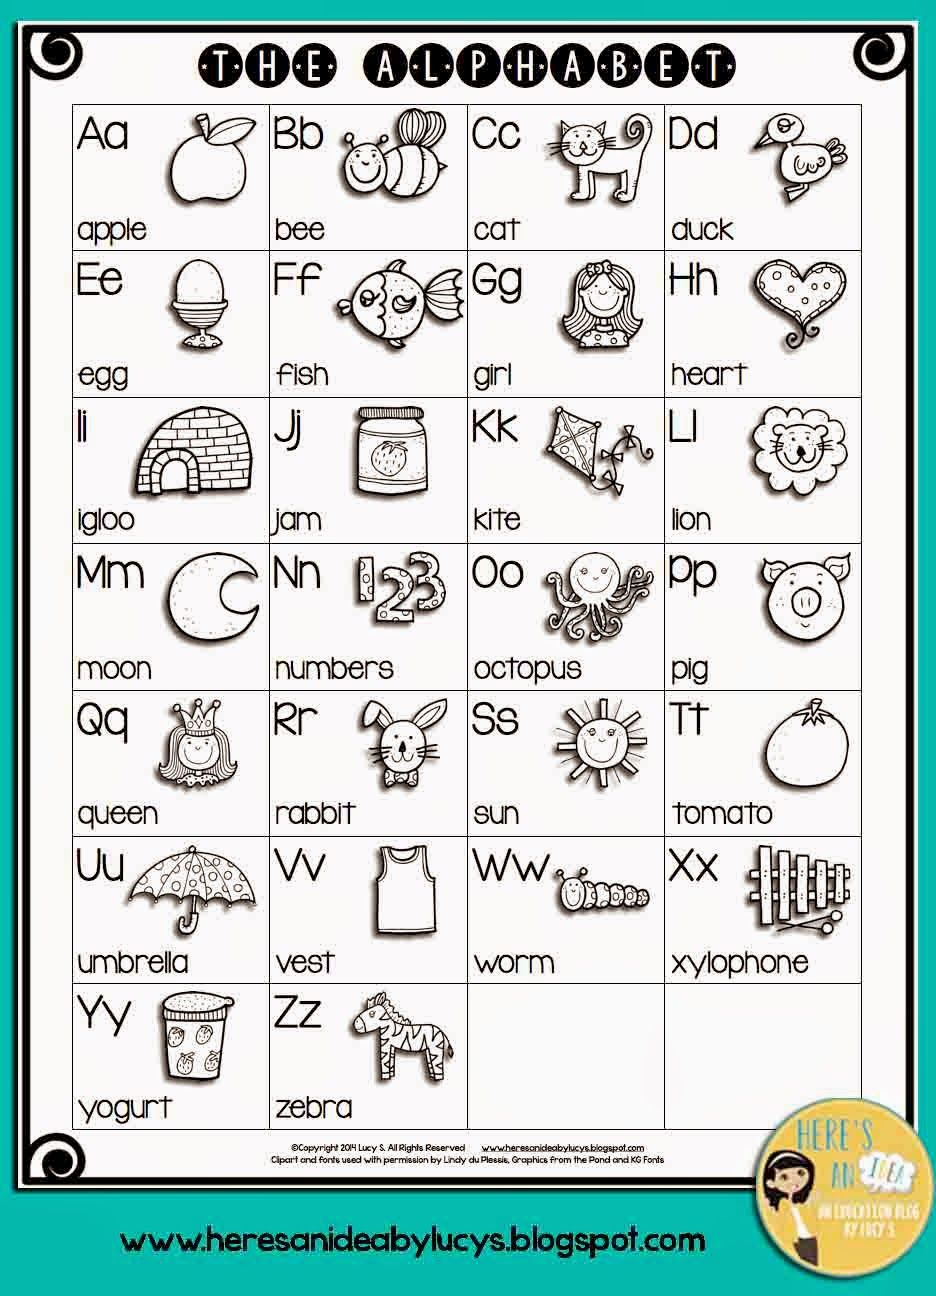 Free B W English Alphabet Chart Have Kids Color The Pictures And Keep This Chart For Reference Alphabet Words Alphabet Chart Printable Alphabet Charts